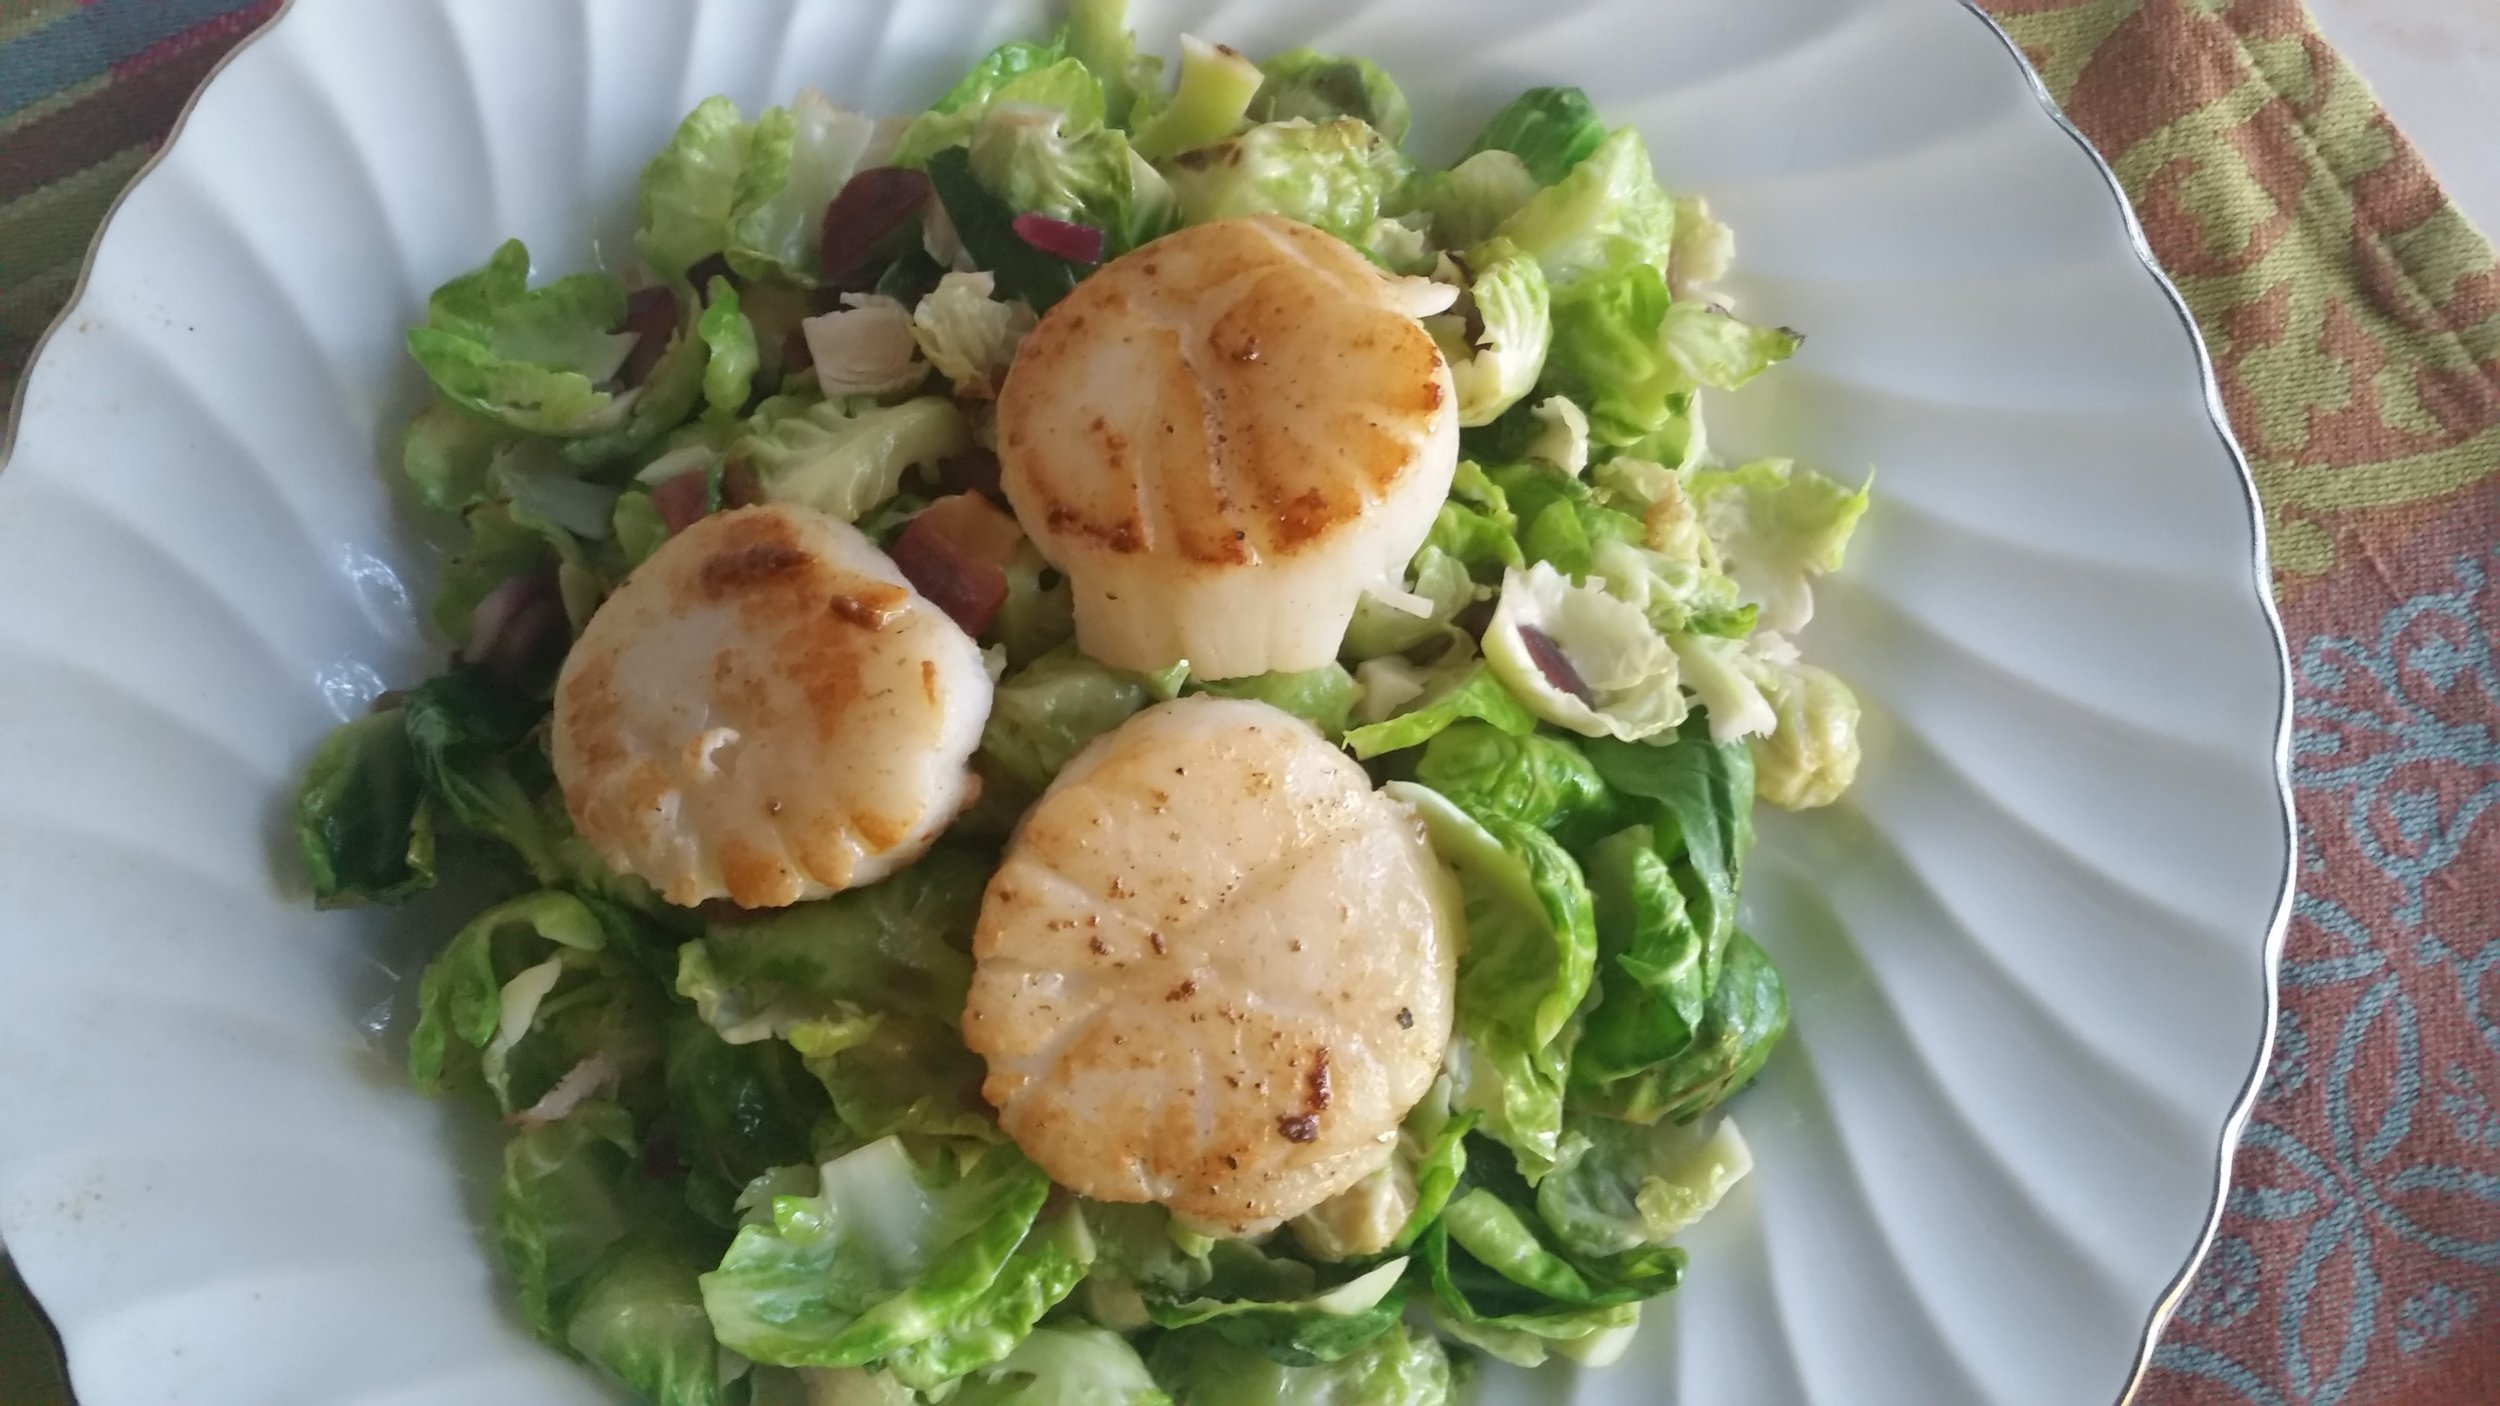 Seared Sea Scallops with Smoked Sea Salt served with Brussels Sprouts